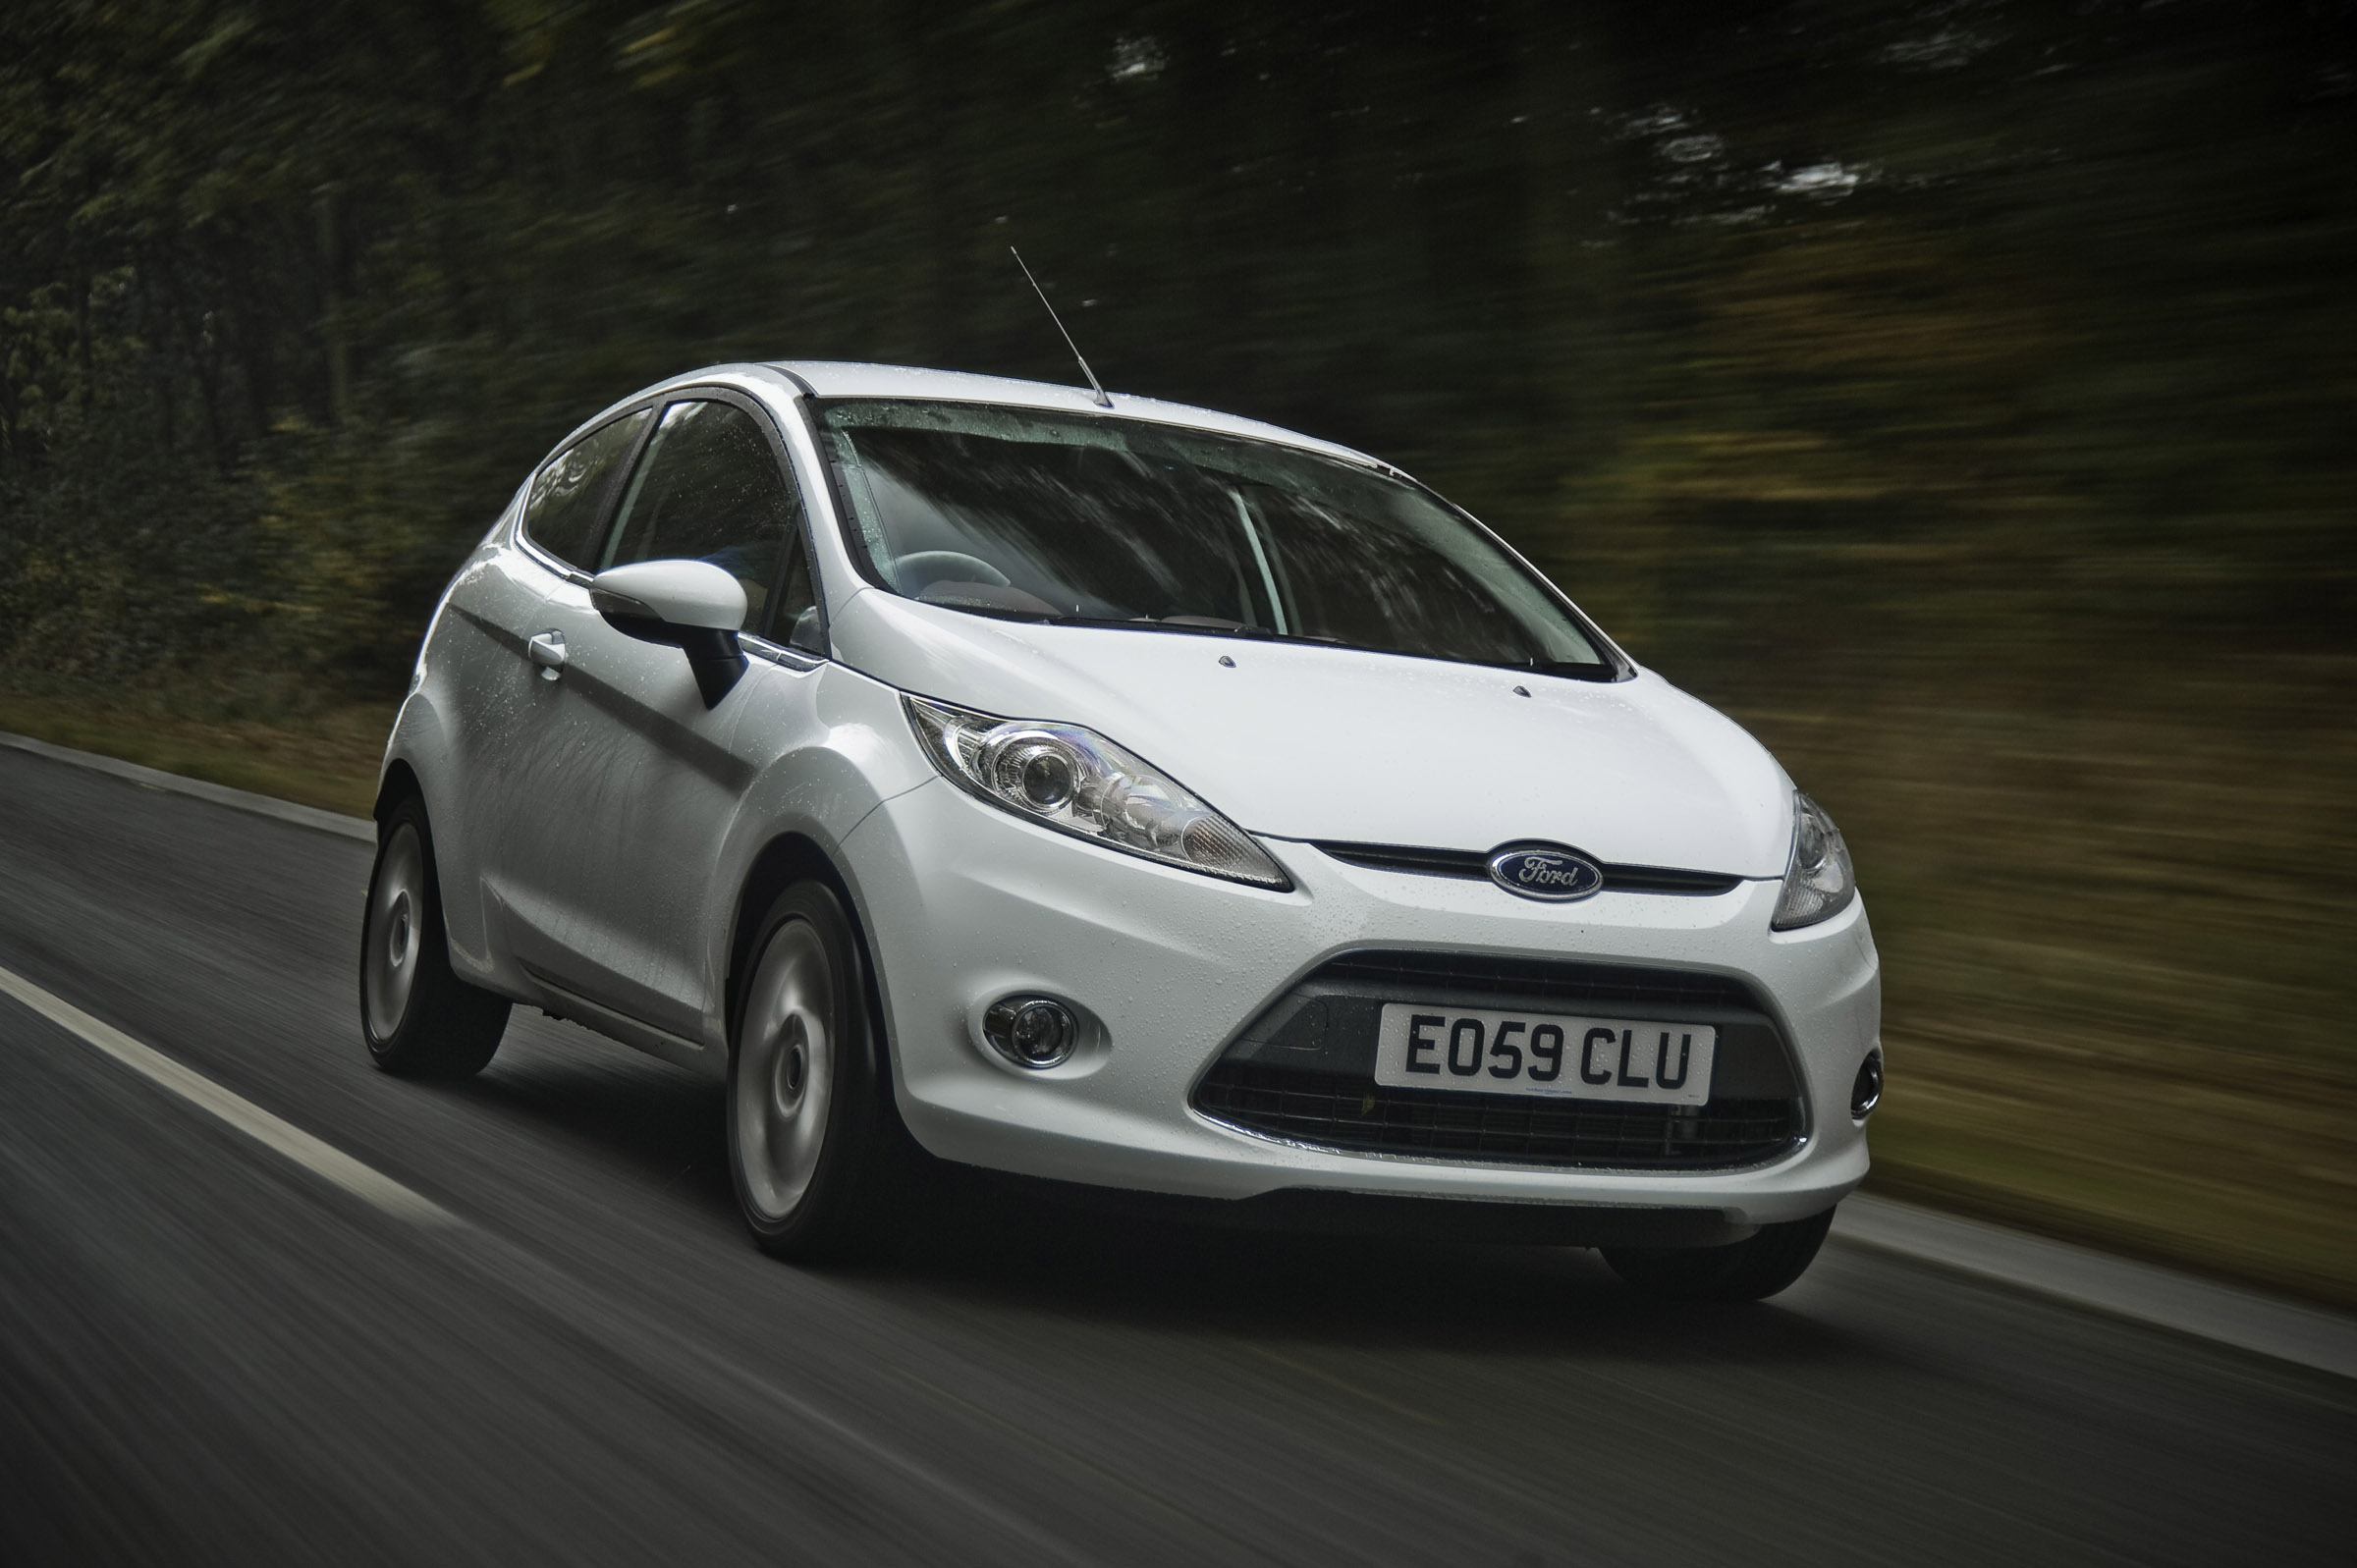 Asean Reveal For The New Ford Fiesta